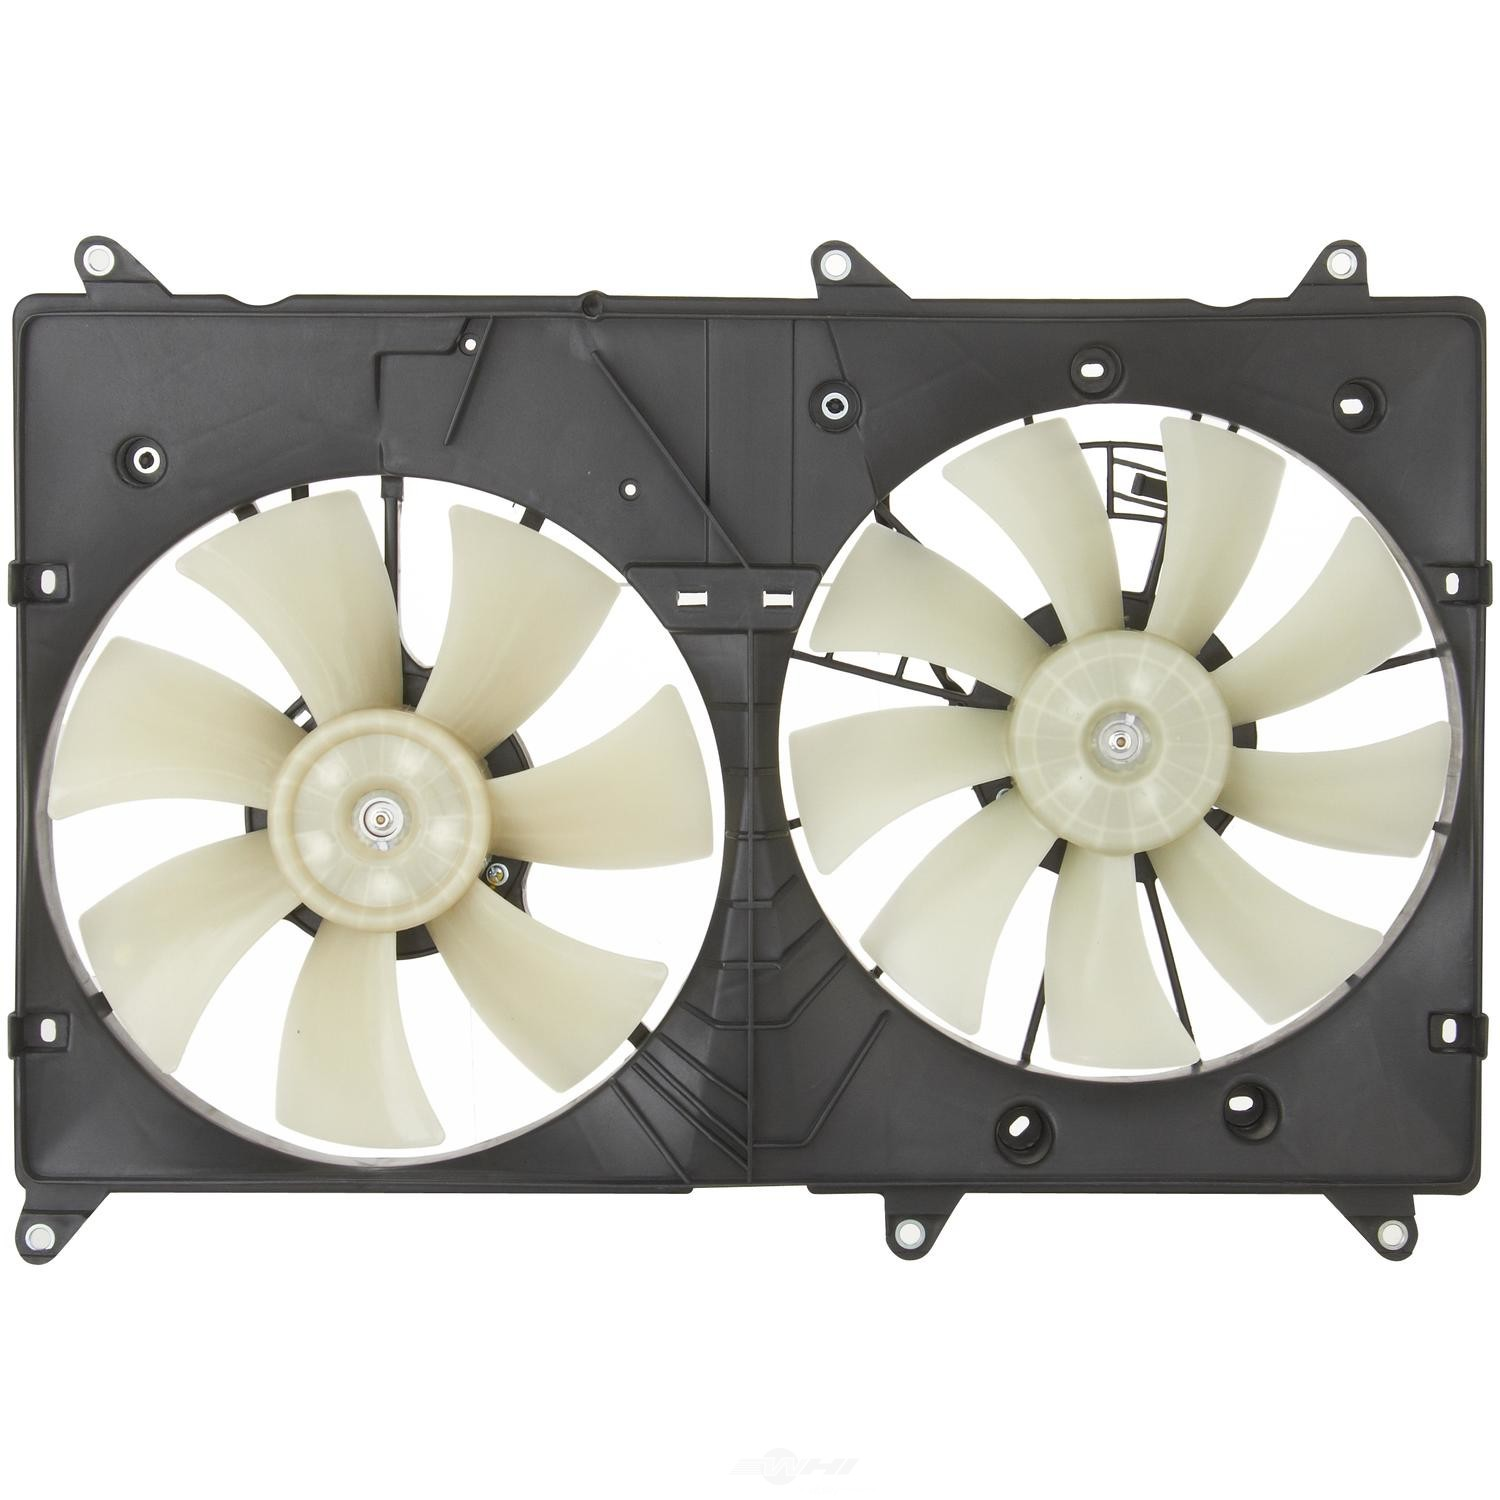 SPECTRA PREMIUM IND, INC. - Dual Radiator and Condenser Fan Assembly - SPC CF20034